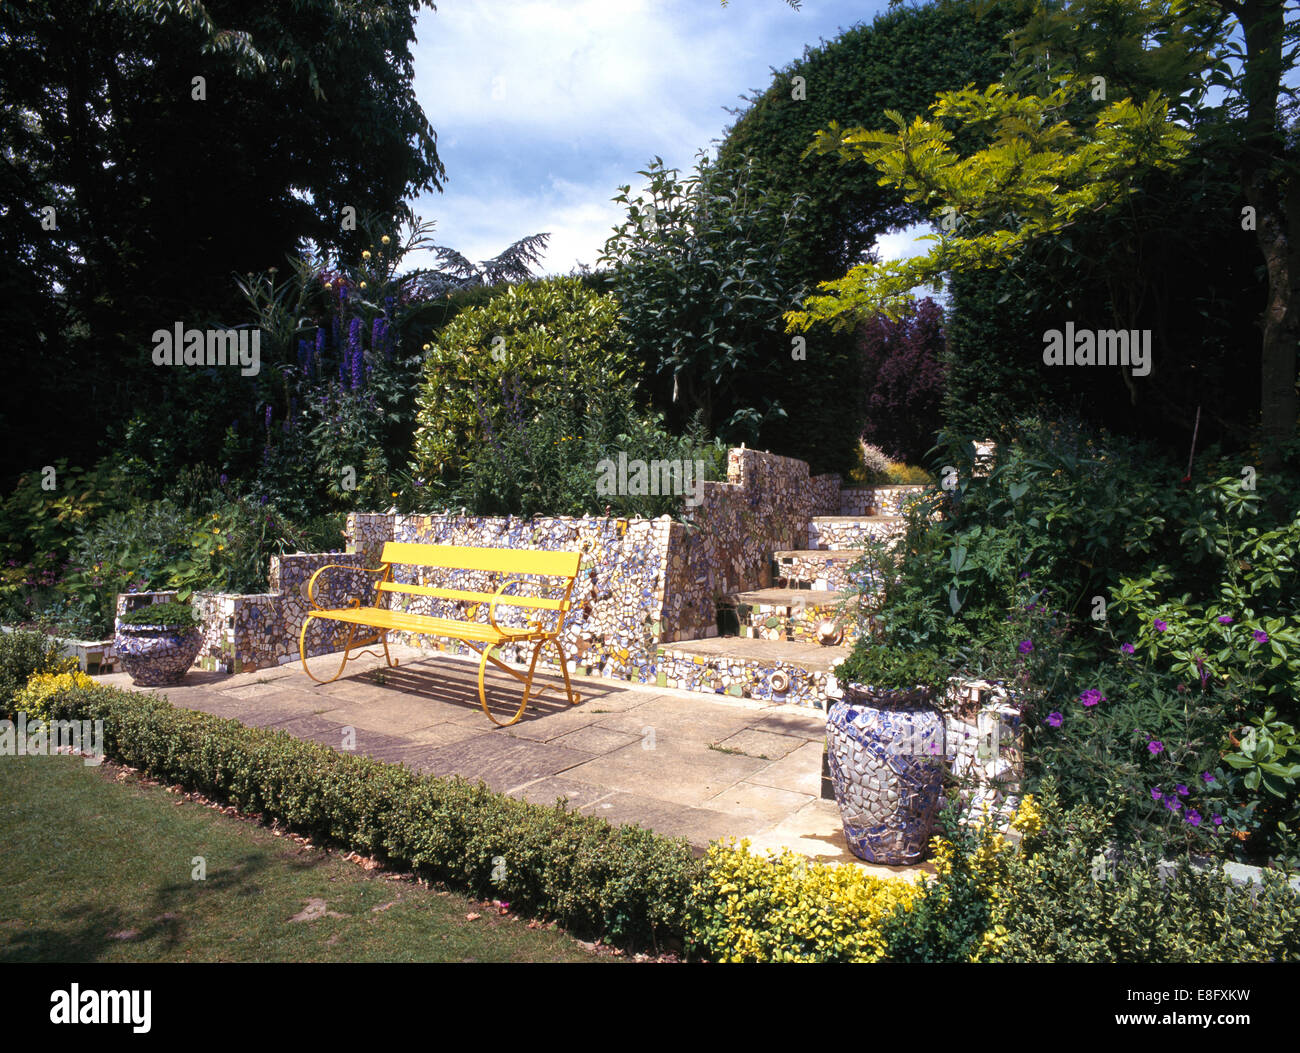 Yellow painted bench on patio edged with low clipped hedging in large country garden - Stock Image